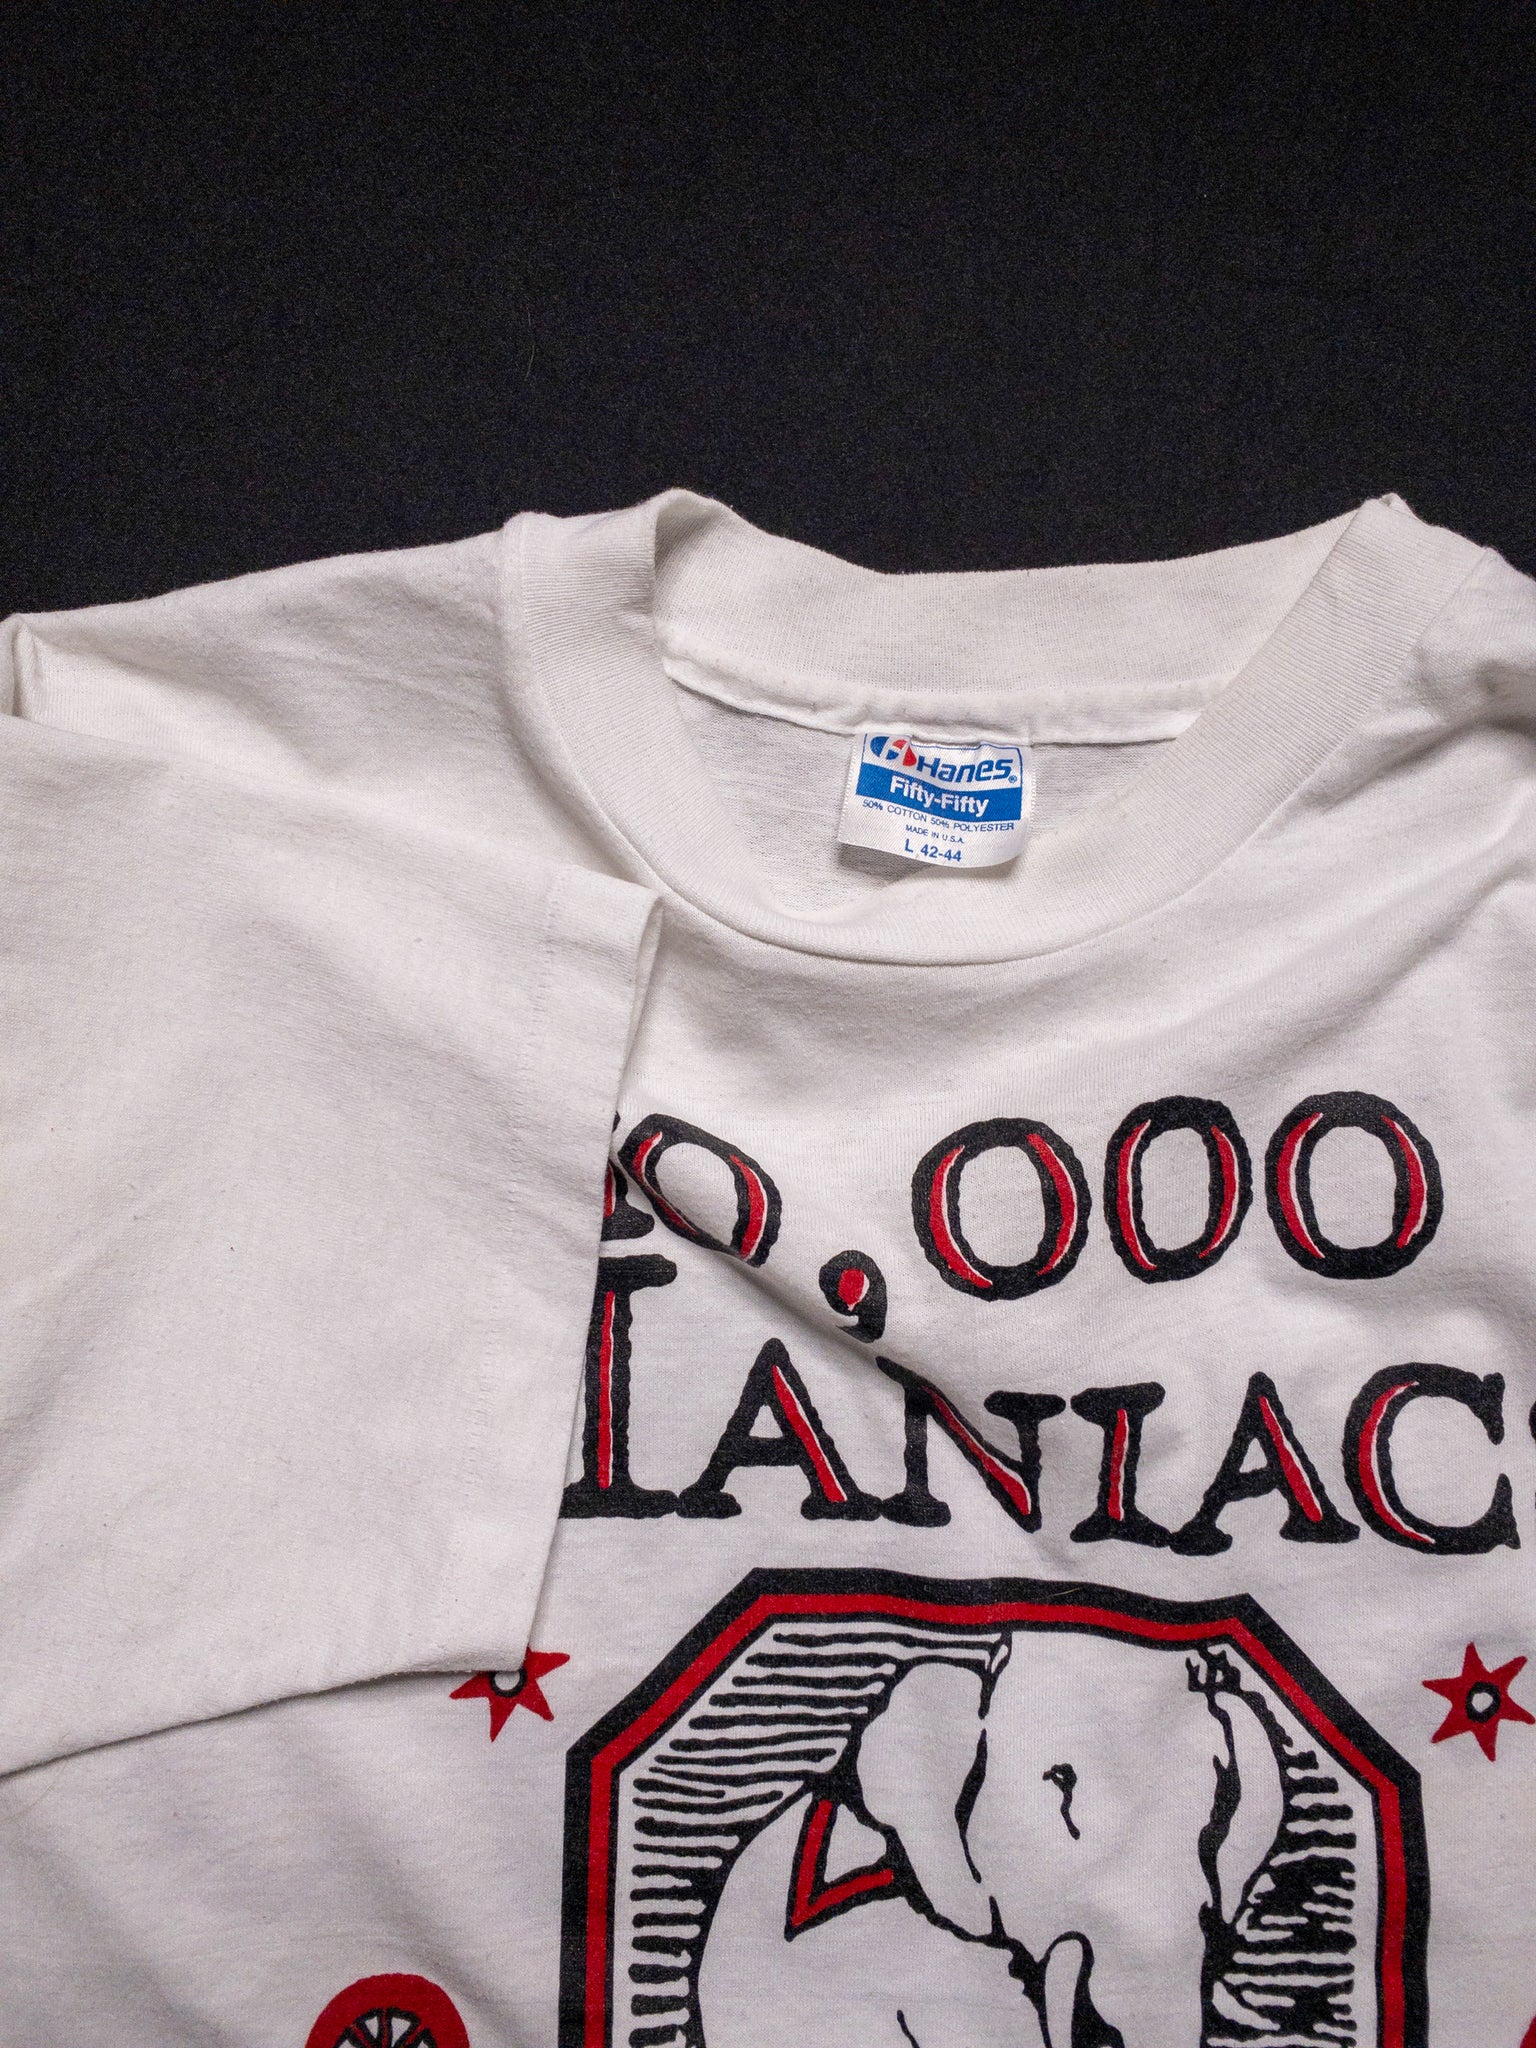 1989 10,000 Maniacs Blind Man's Zoo US Tour T-Shirt